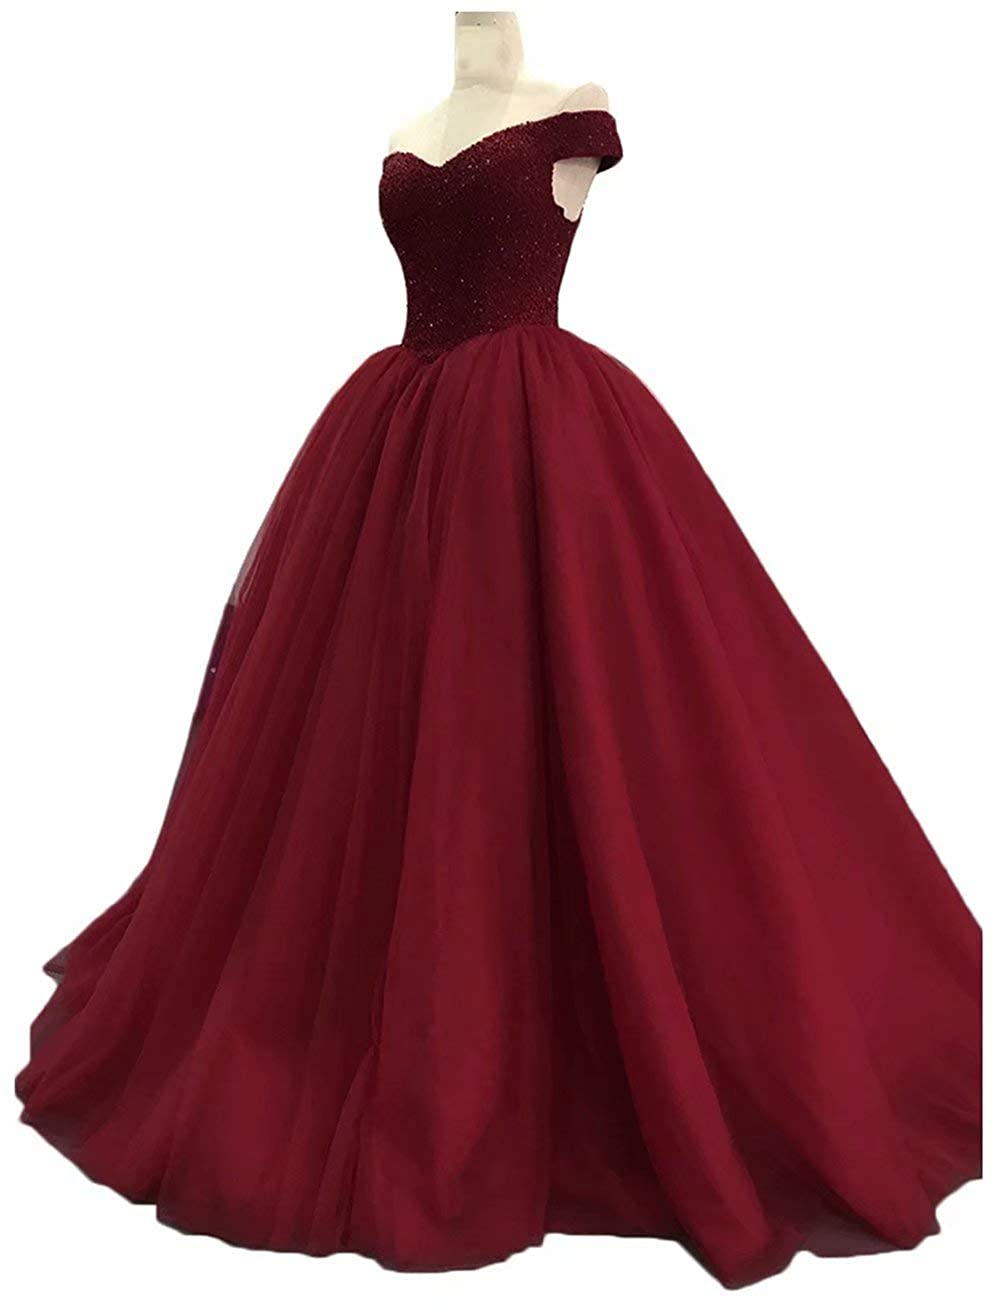 Burgundy Womens Off The Shoulder Prom Dresses Long 2019 Beaded Tulle A Line Evening Formal Gowns Wedding Party Dresses